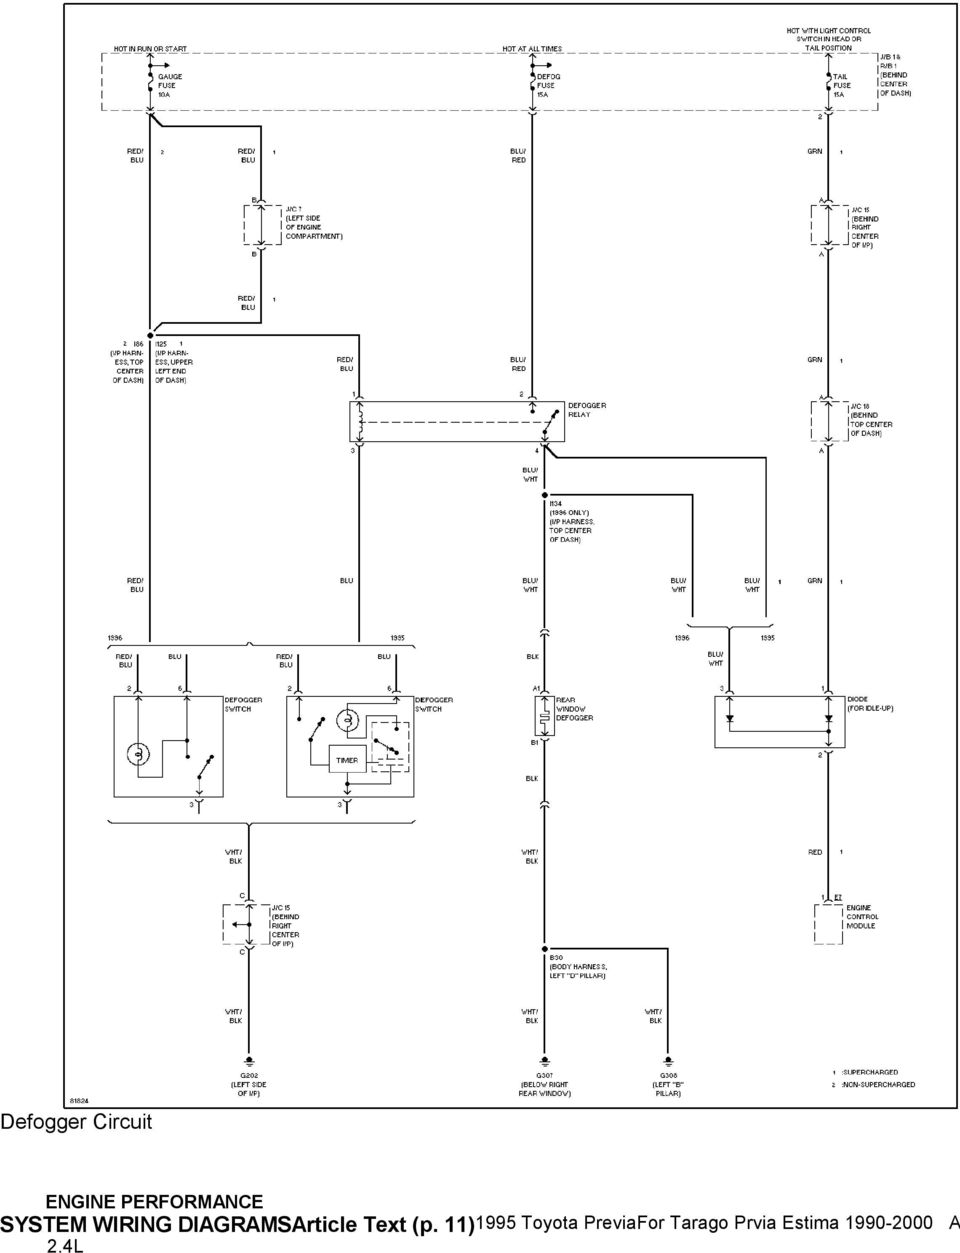 Toyota Previa Air Conditioning Wiring Diagram Library Mack Mr688s Fuse 111995 Previafor Tarago